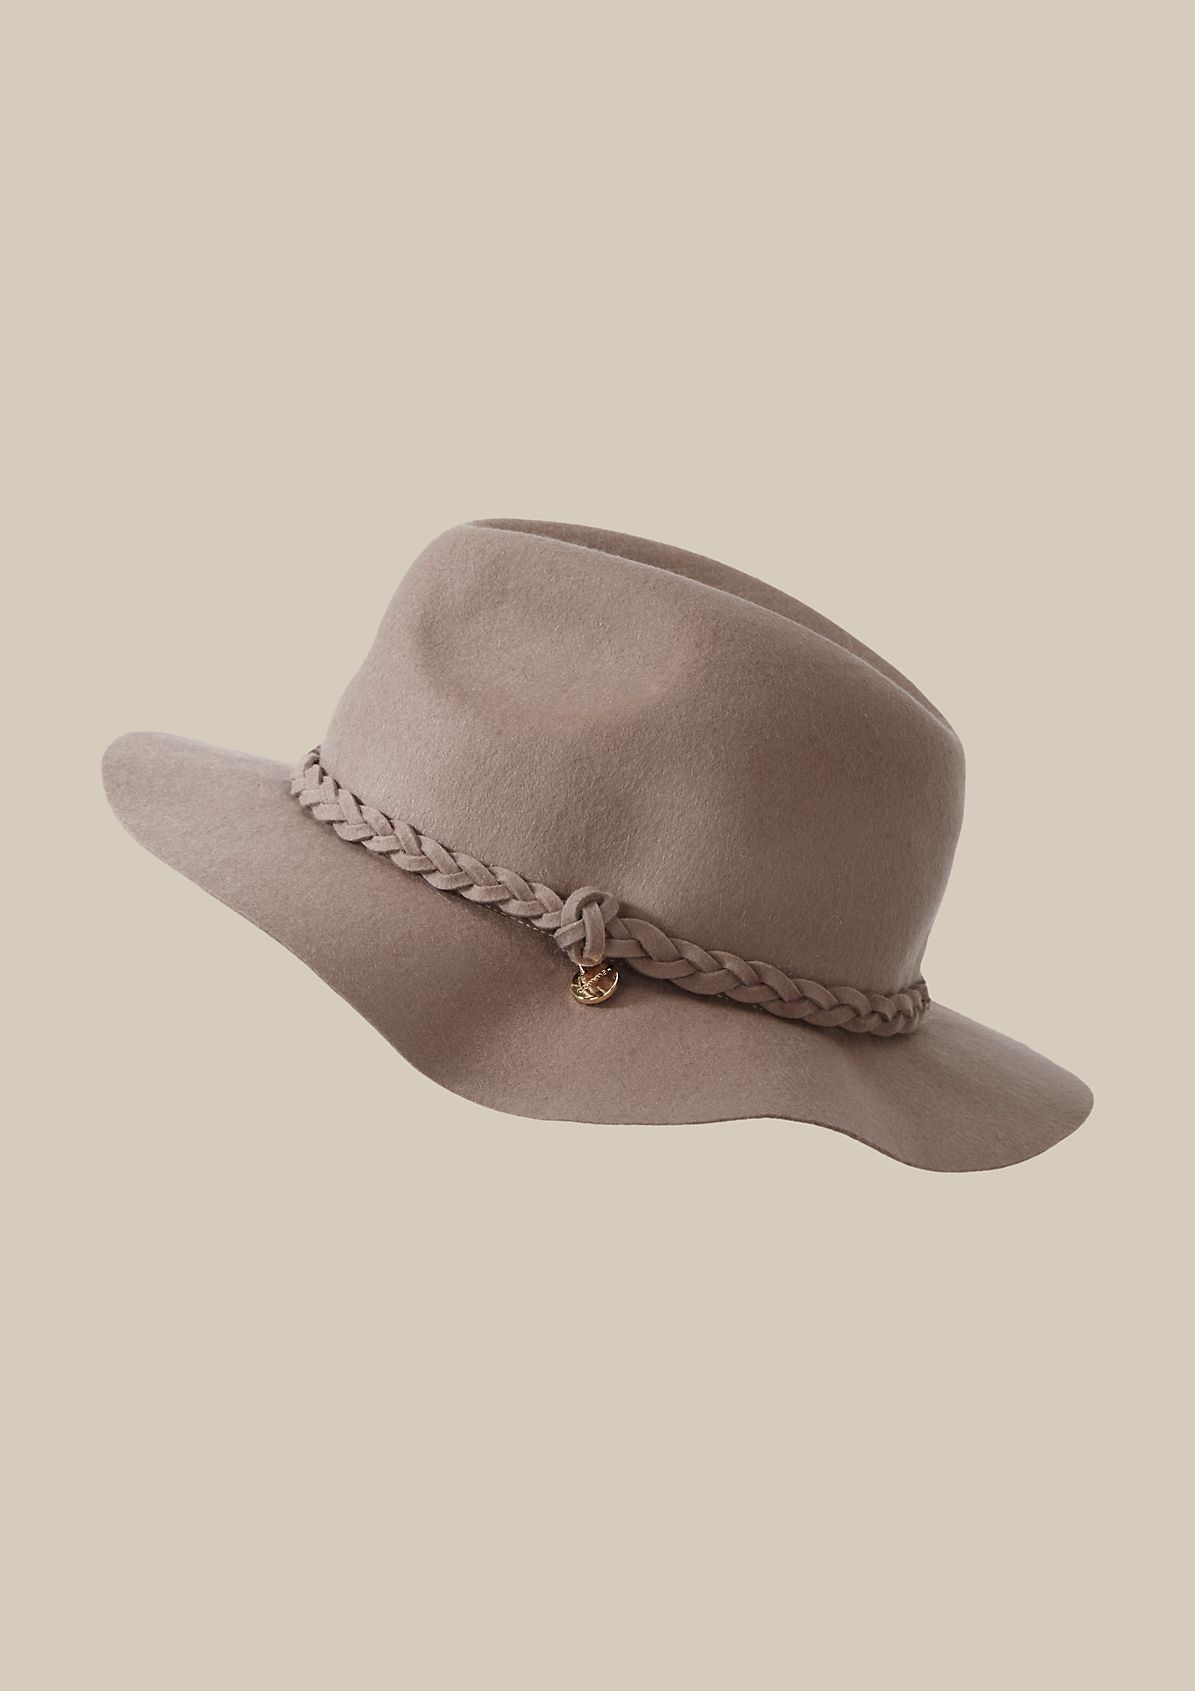 Smart felt hat with a woven hat band from comma